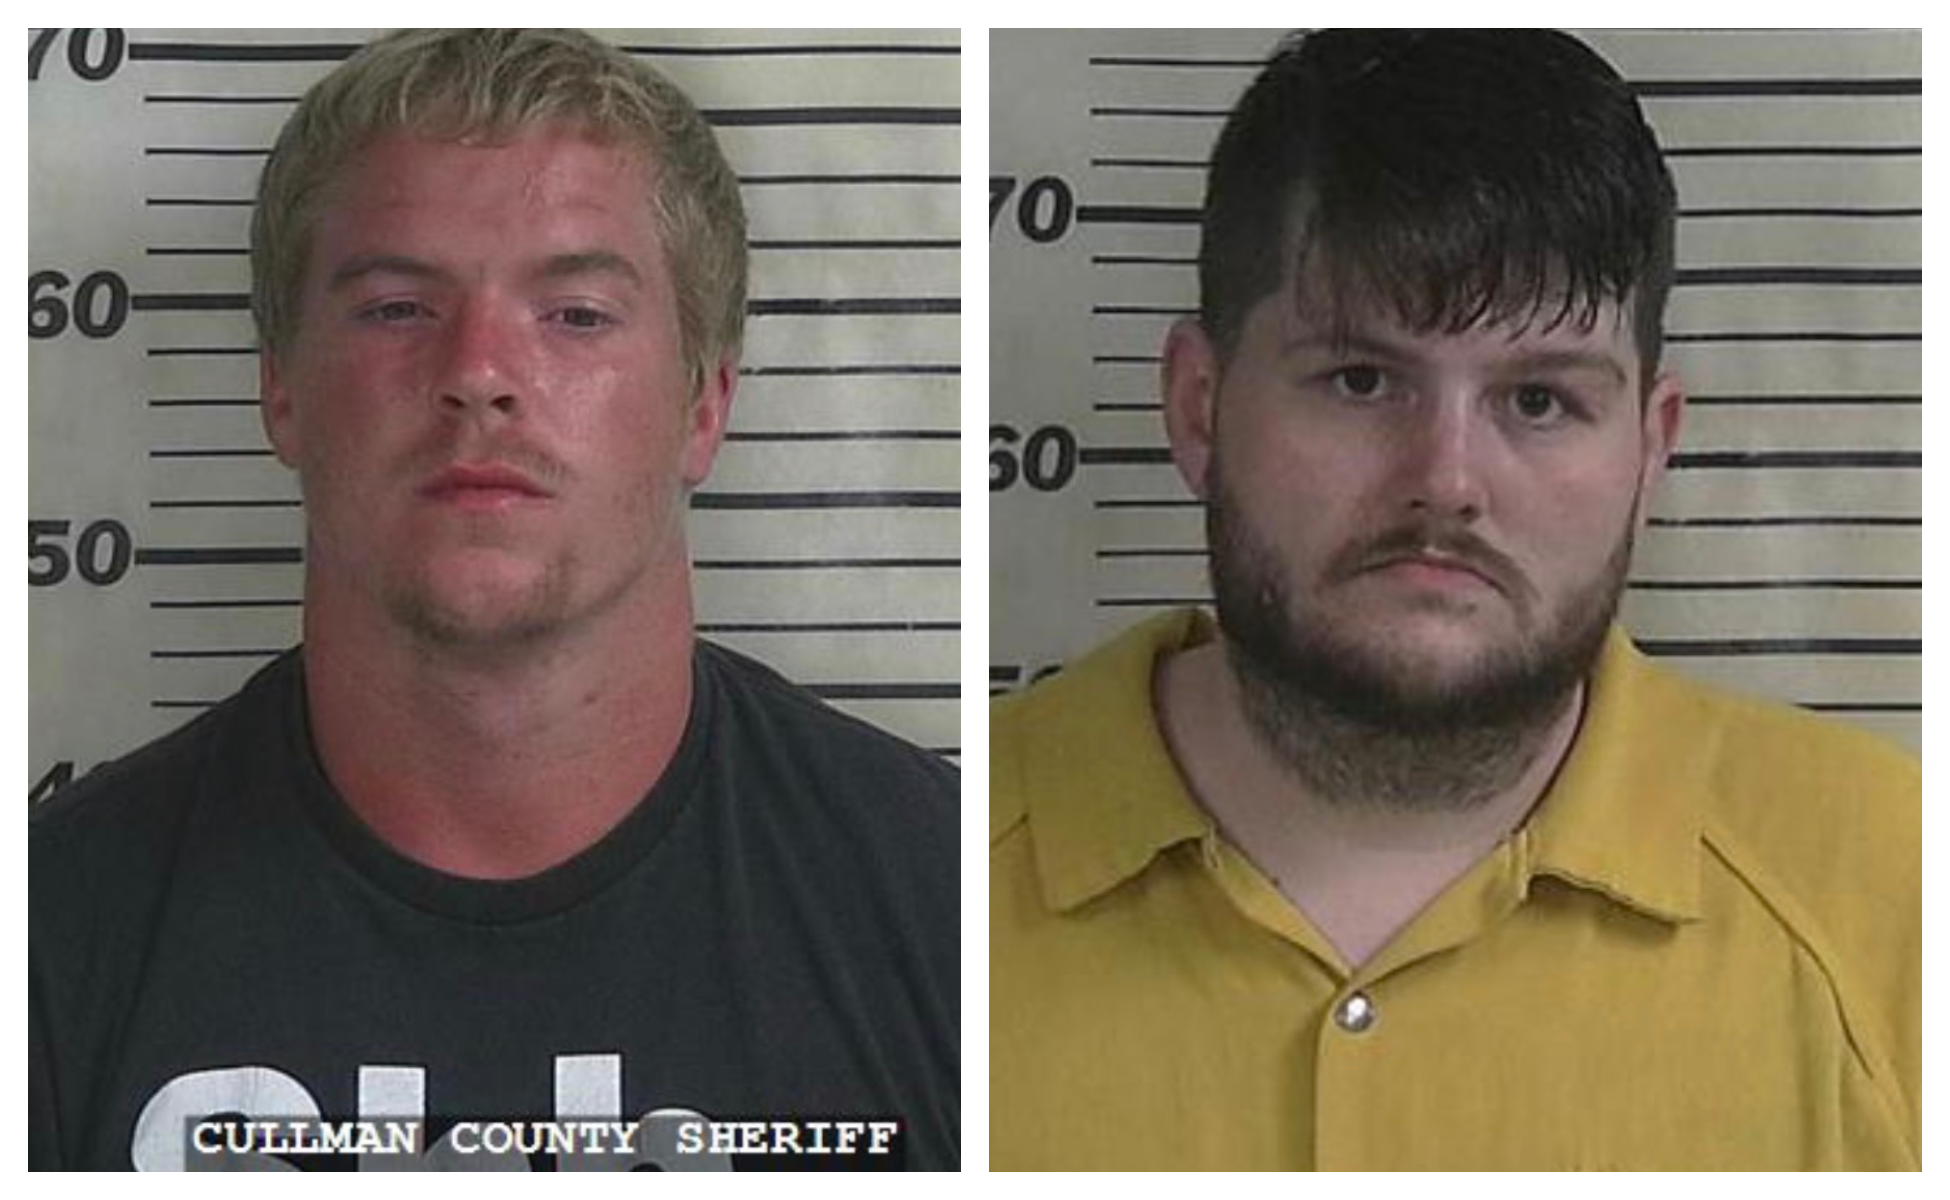 Escaped Cullman County inmates captured in Illinois | The